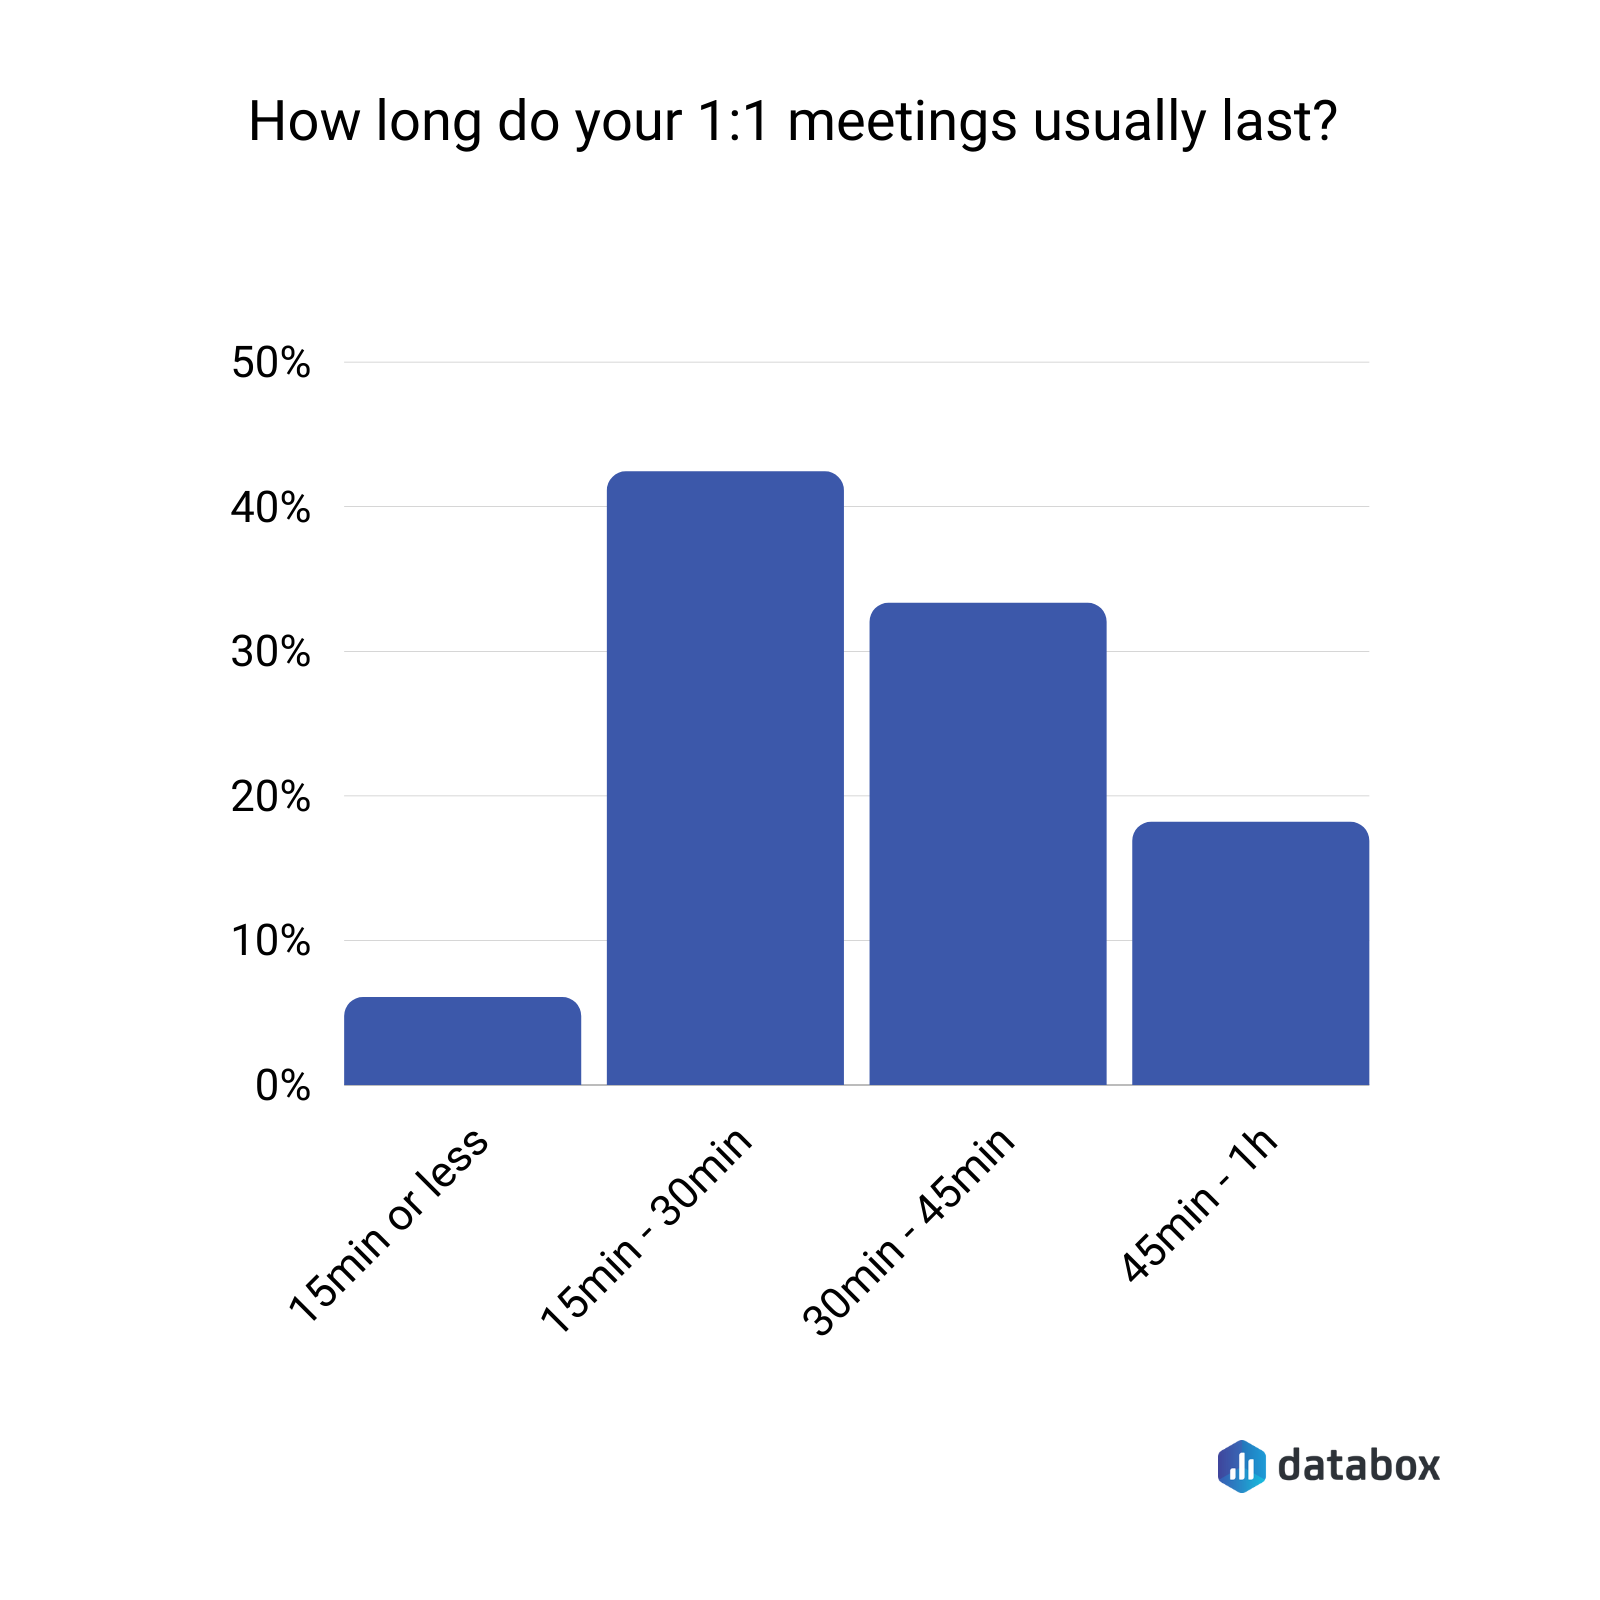 How Long Do 1:1 Meetings Typically Last?